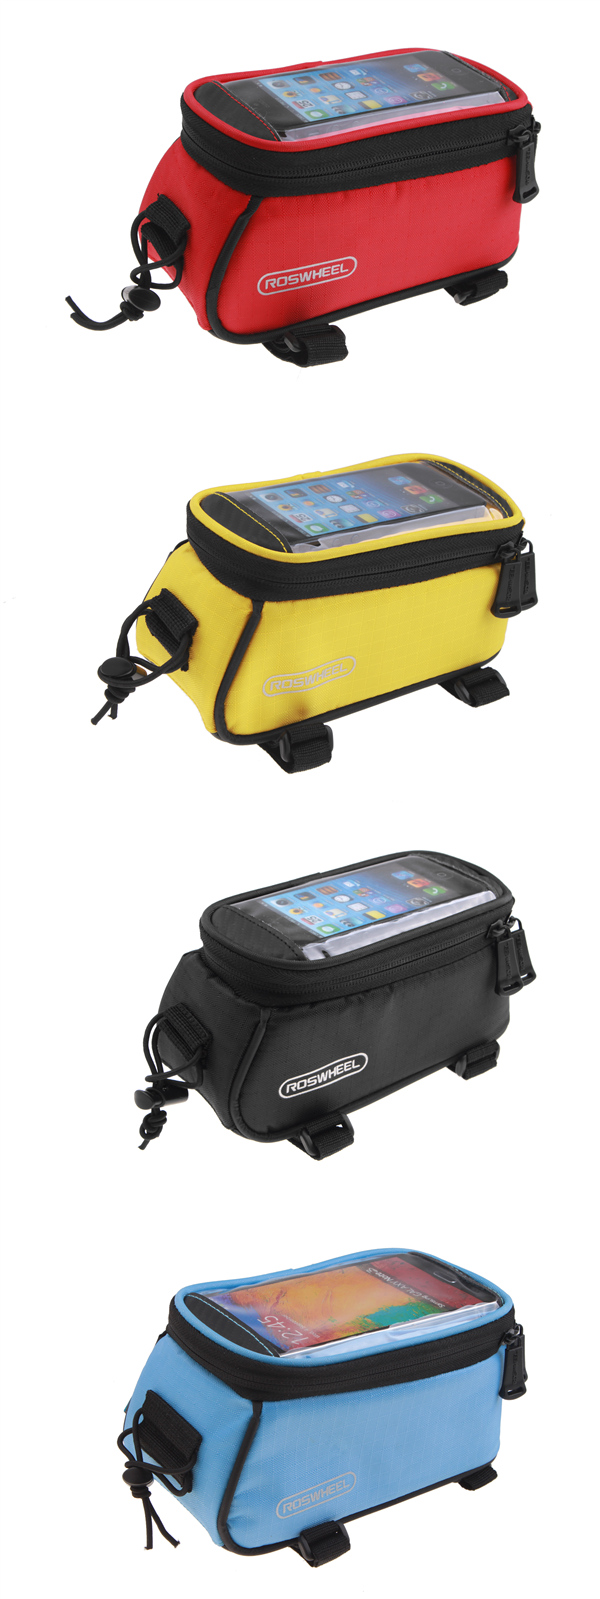 ROSWHEEL Bicycle Mobile Phone Touch Screen Bag Frame Tube Bag